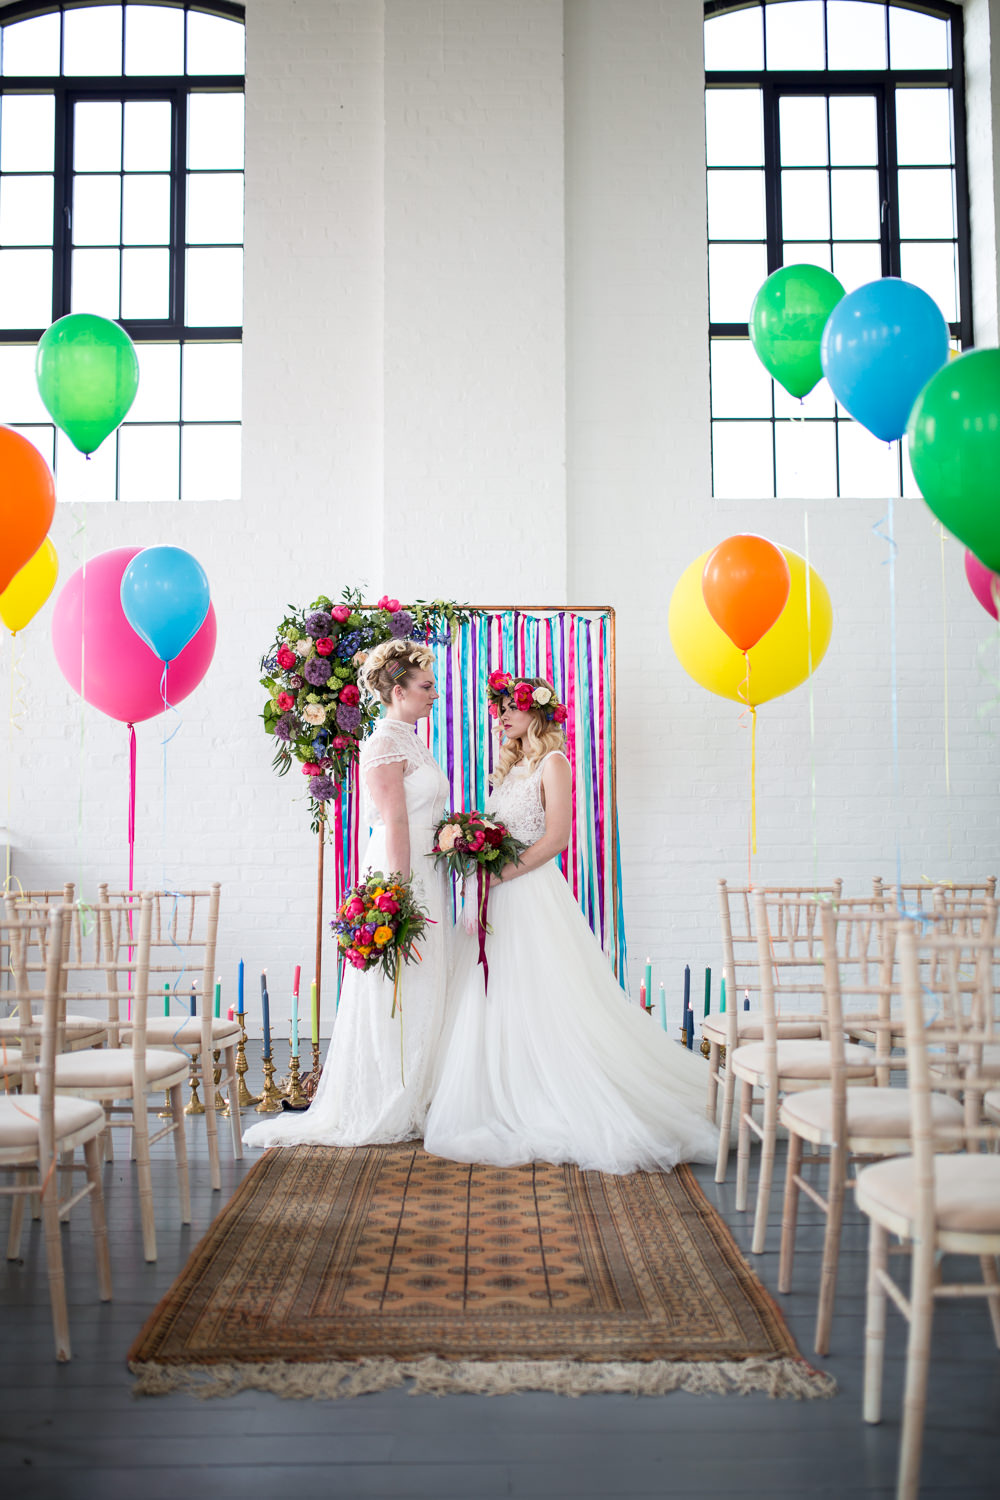 Ribbon Backdrop Arch Ceremony Aisle Flowers Colourful Balloons Wedding Ideas Florence Berry Photography